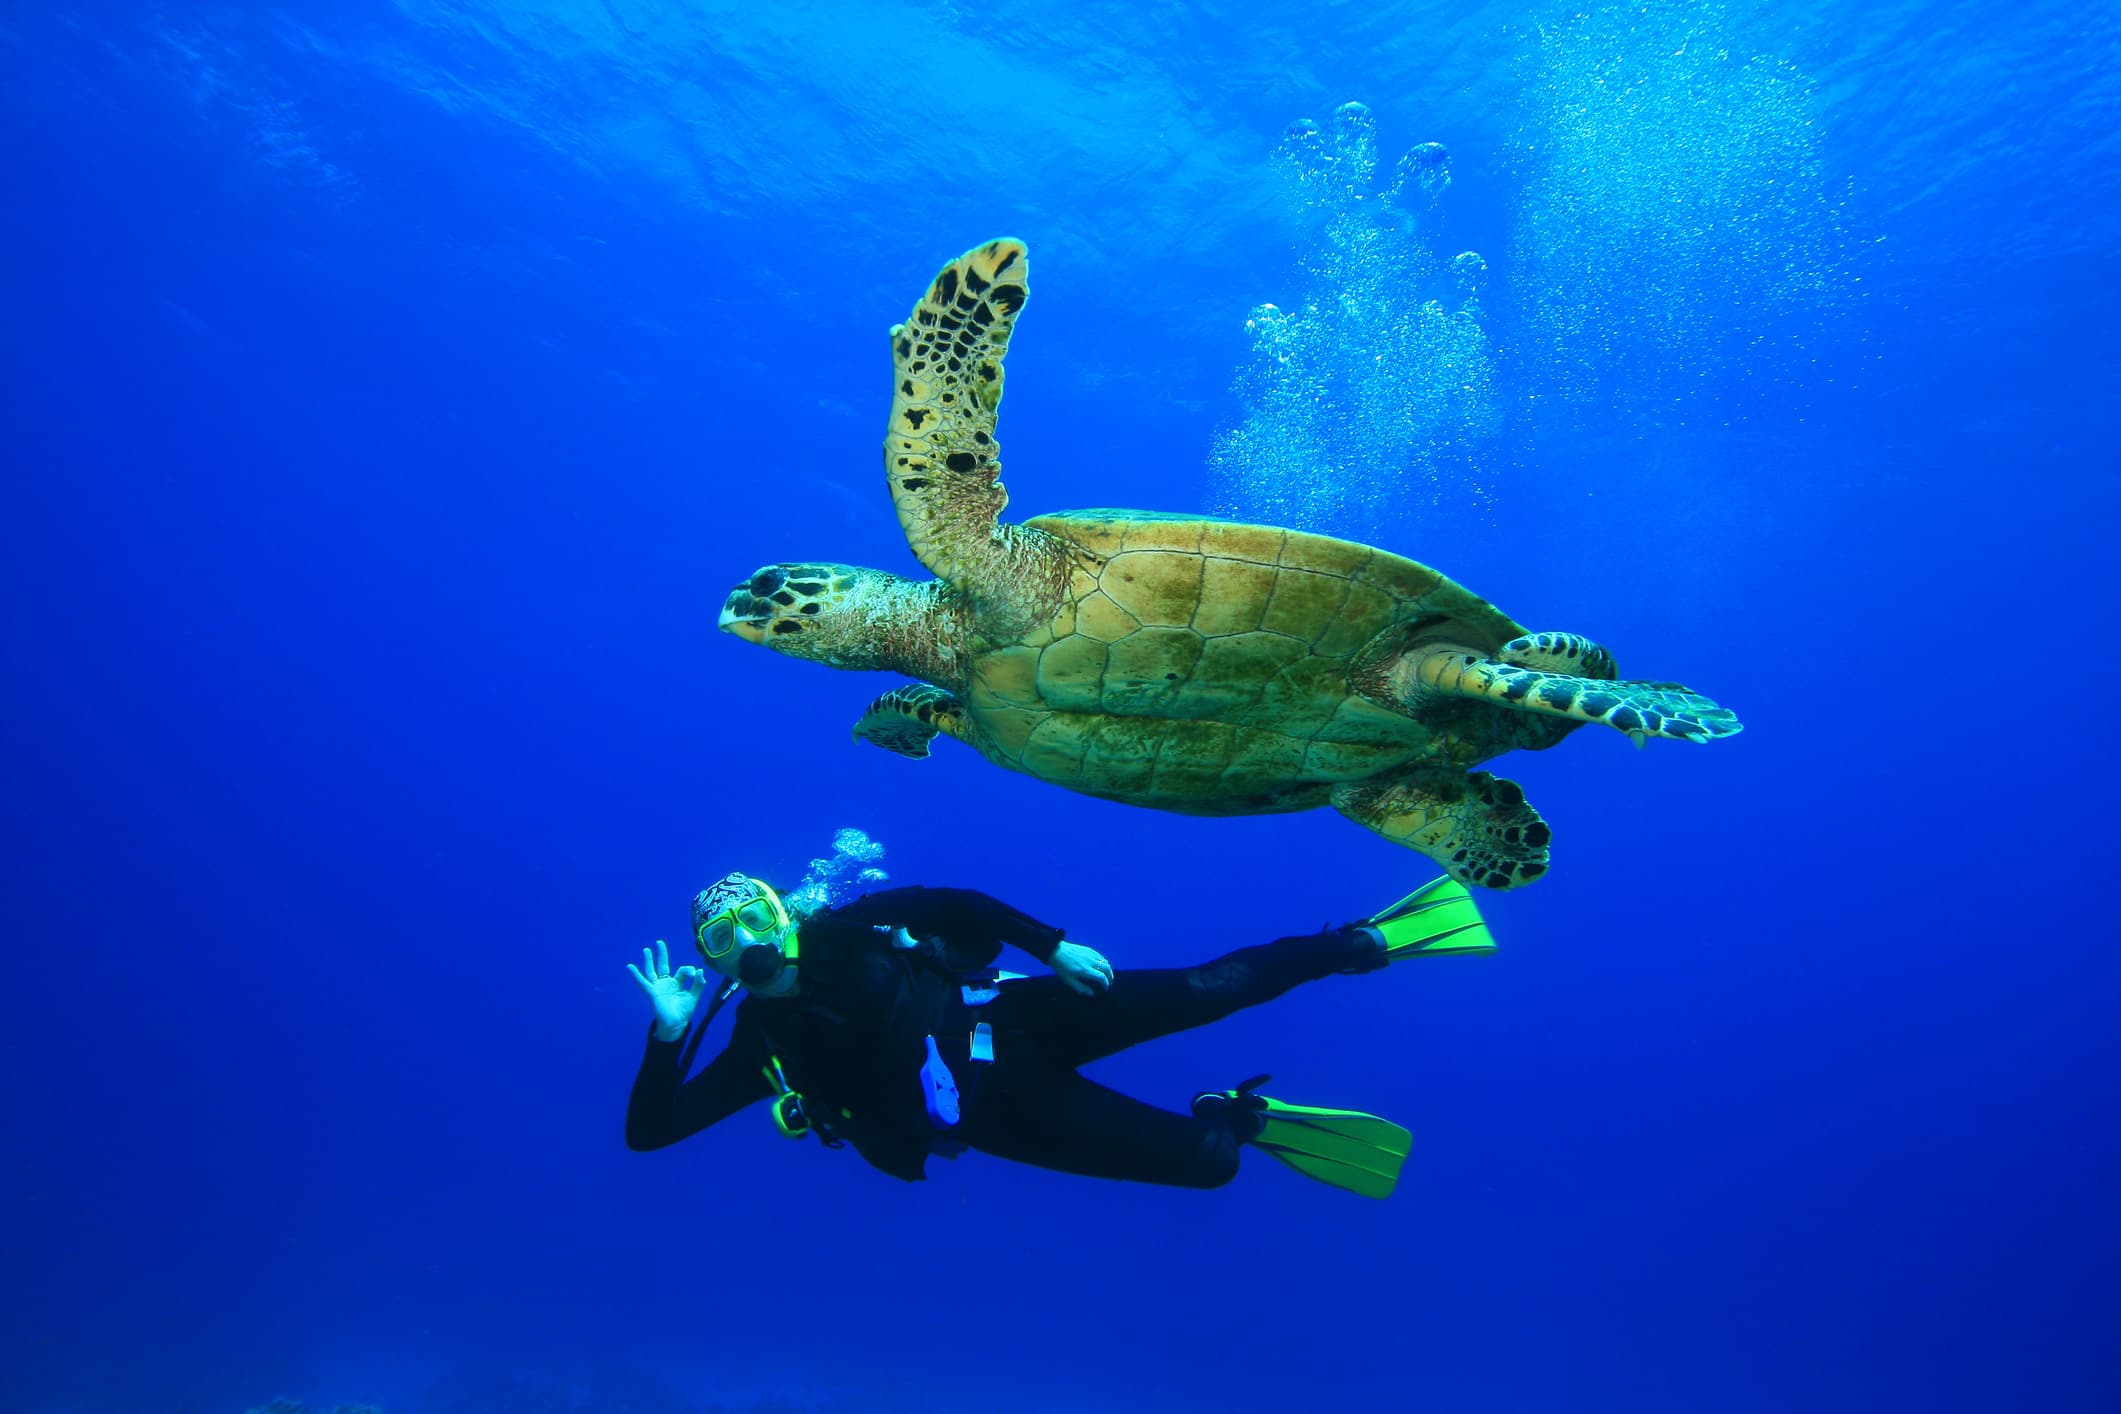 Guide to Cayman Islands scuba diving. Scuba diver with turtle.